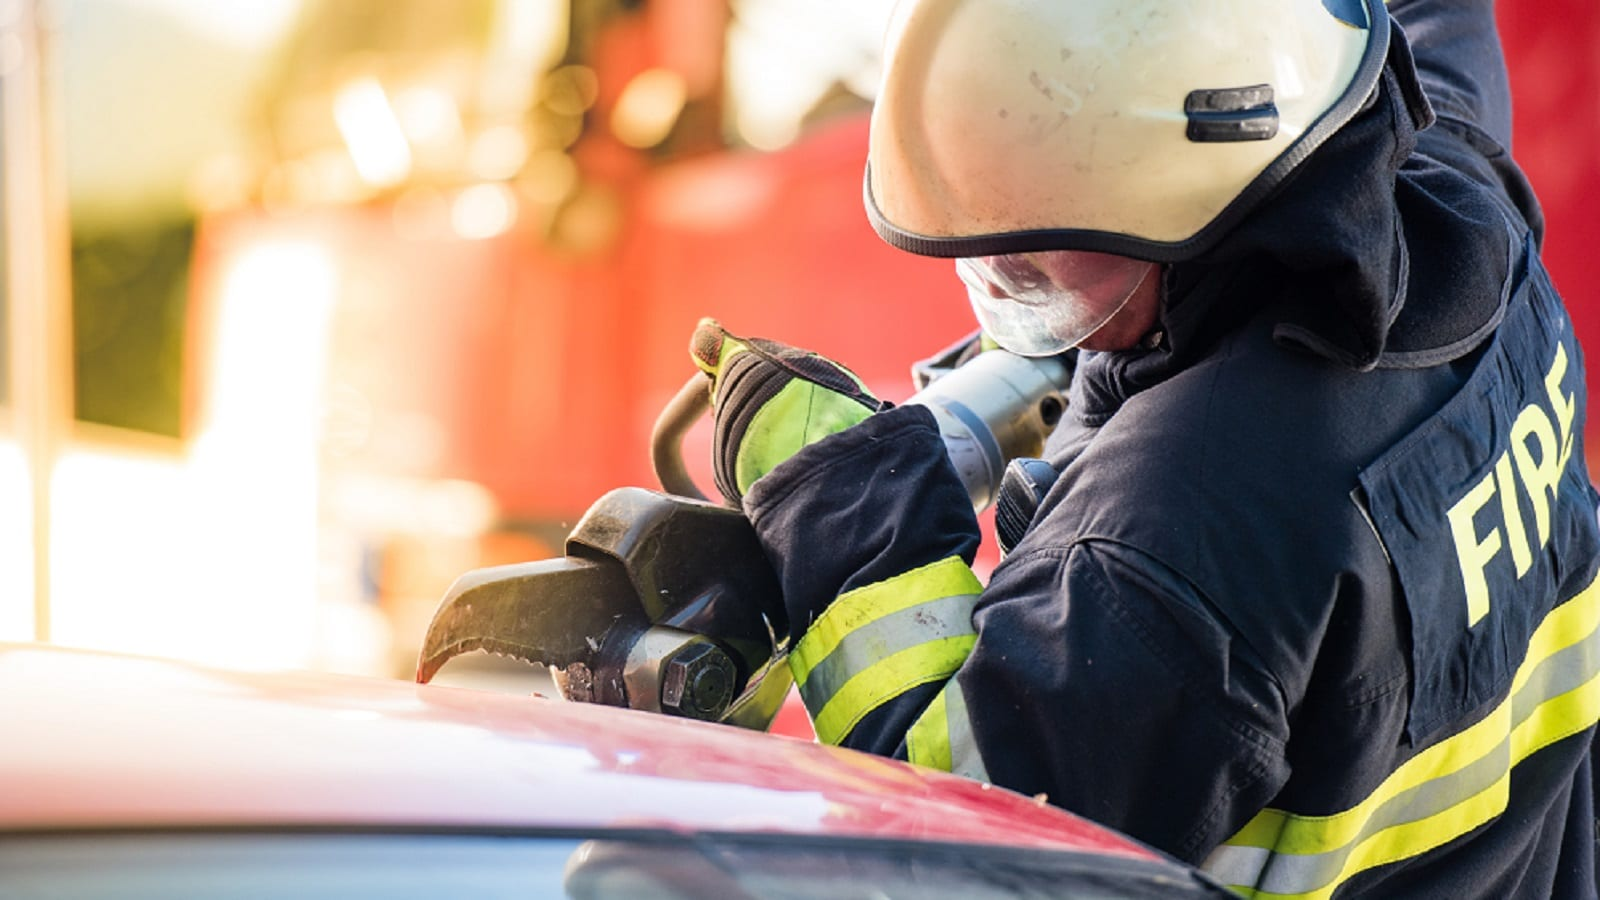 Firefighter Using Jaws of Life During Auto Accident Stock Photo